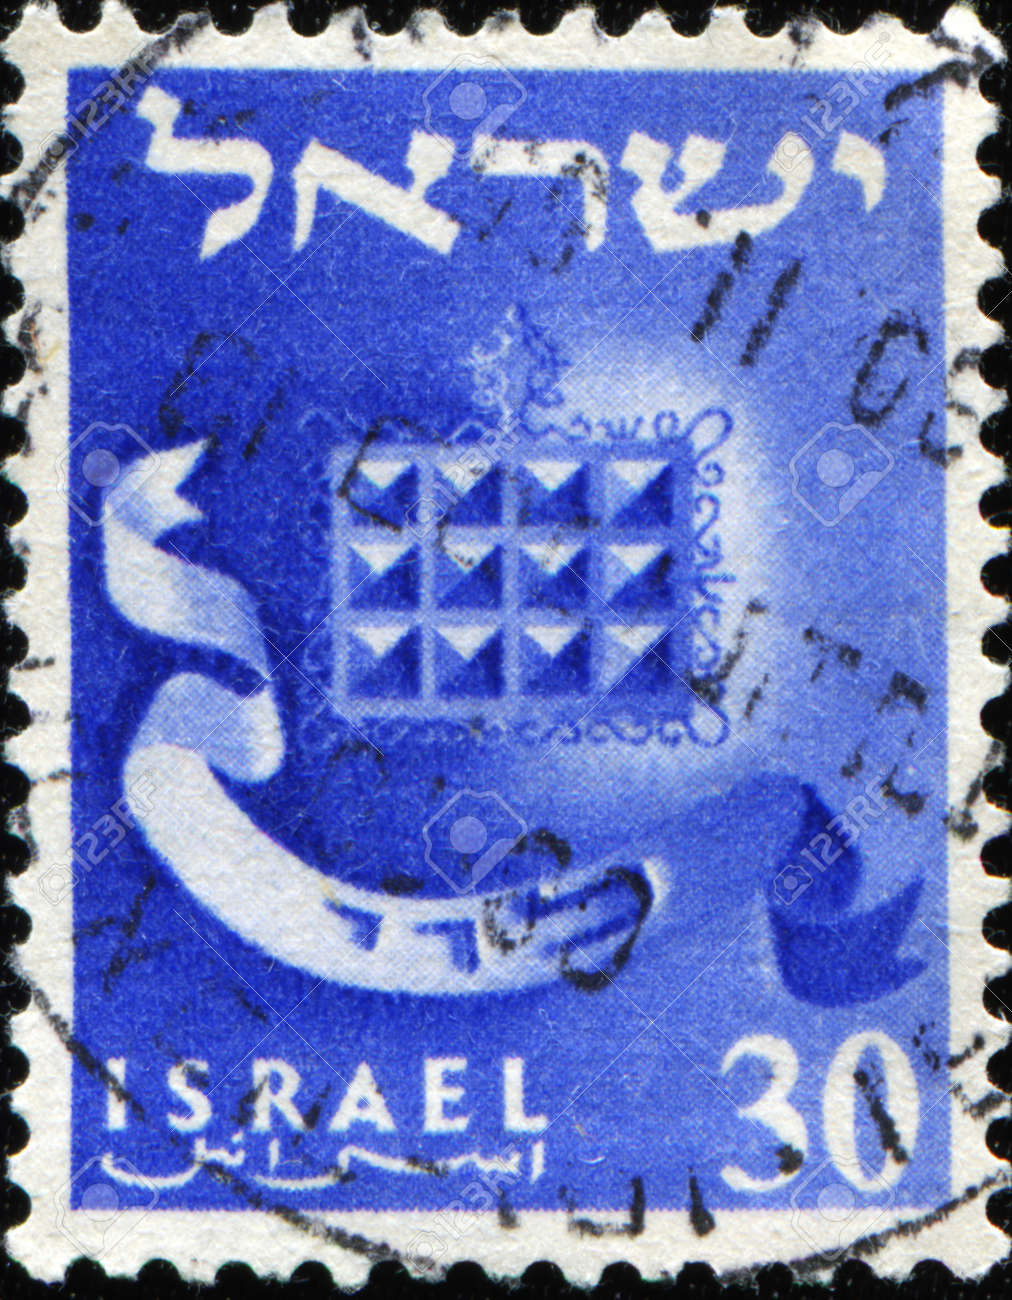 ISRAEL - CIRCA 1955: A stamp printed in Israel shows Coat of arms of Levi - High Priest's breastplate, circa 1955 Stock Photo - 9231645